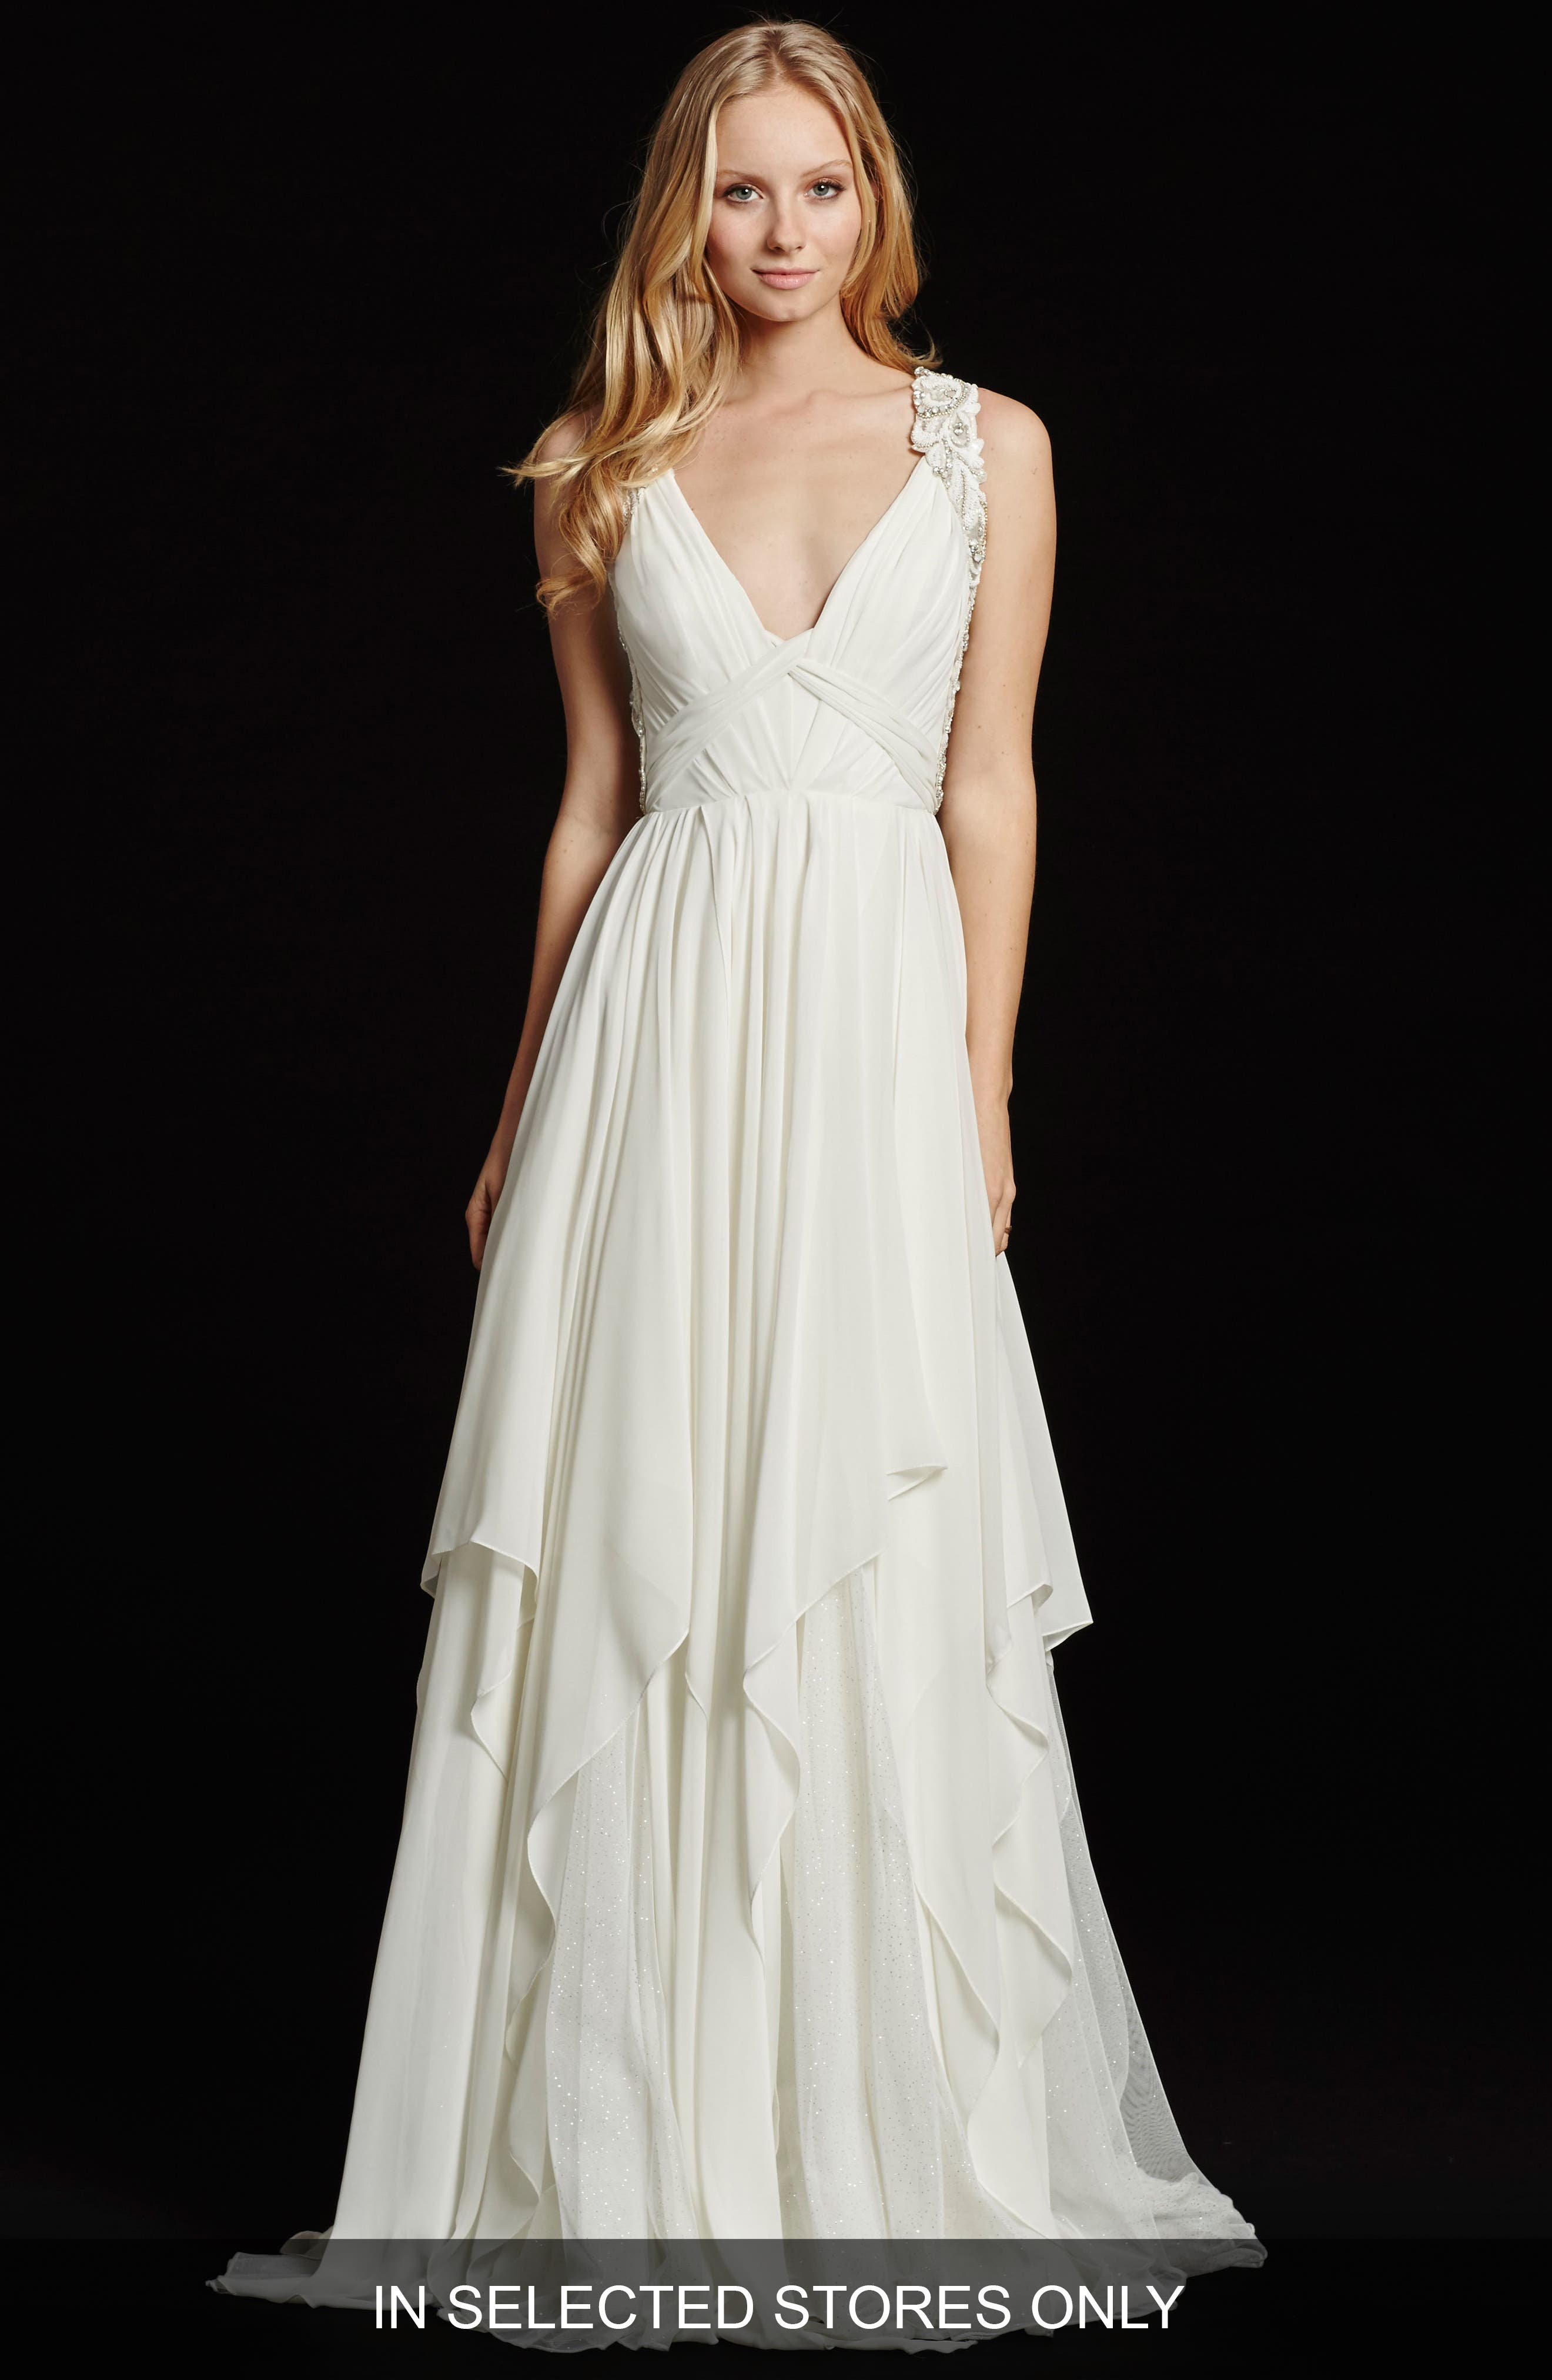 Hayley Paige 'Gwen' Sleeveless Grecian Draped Bodice Chiffon Gown (In Stores Only)